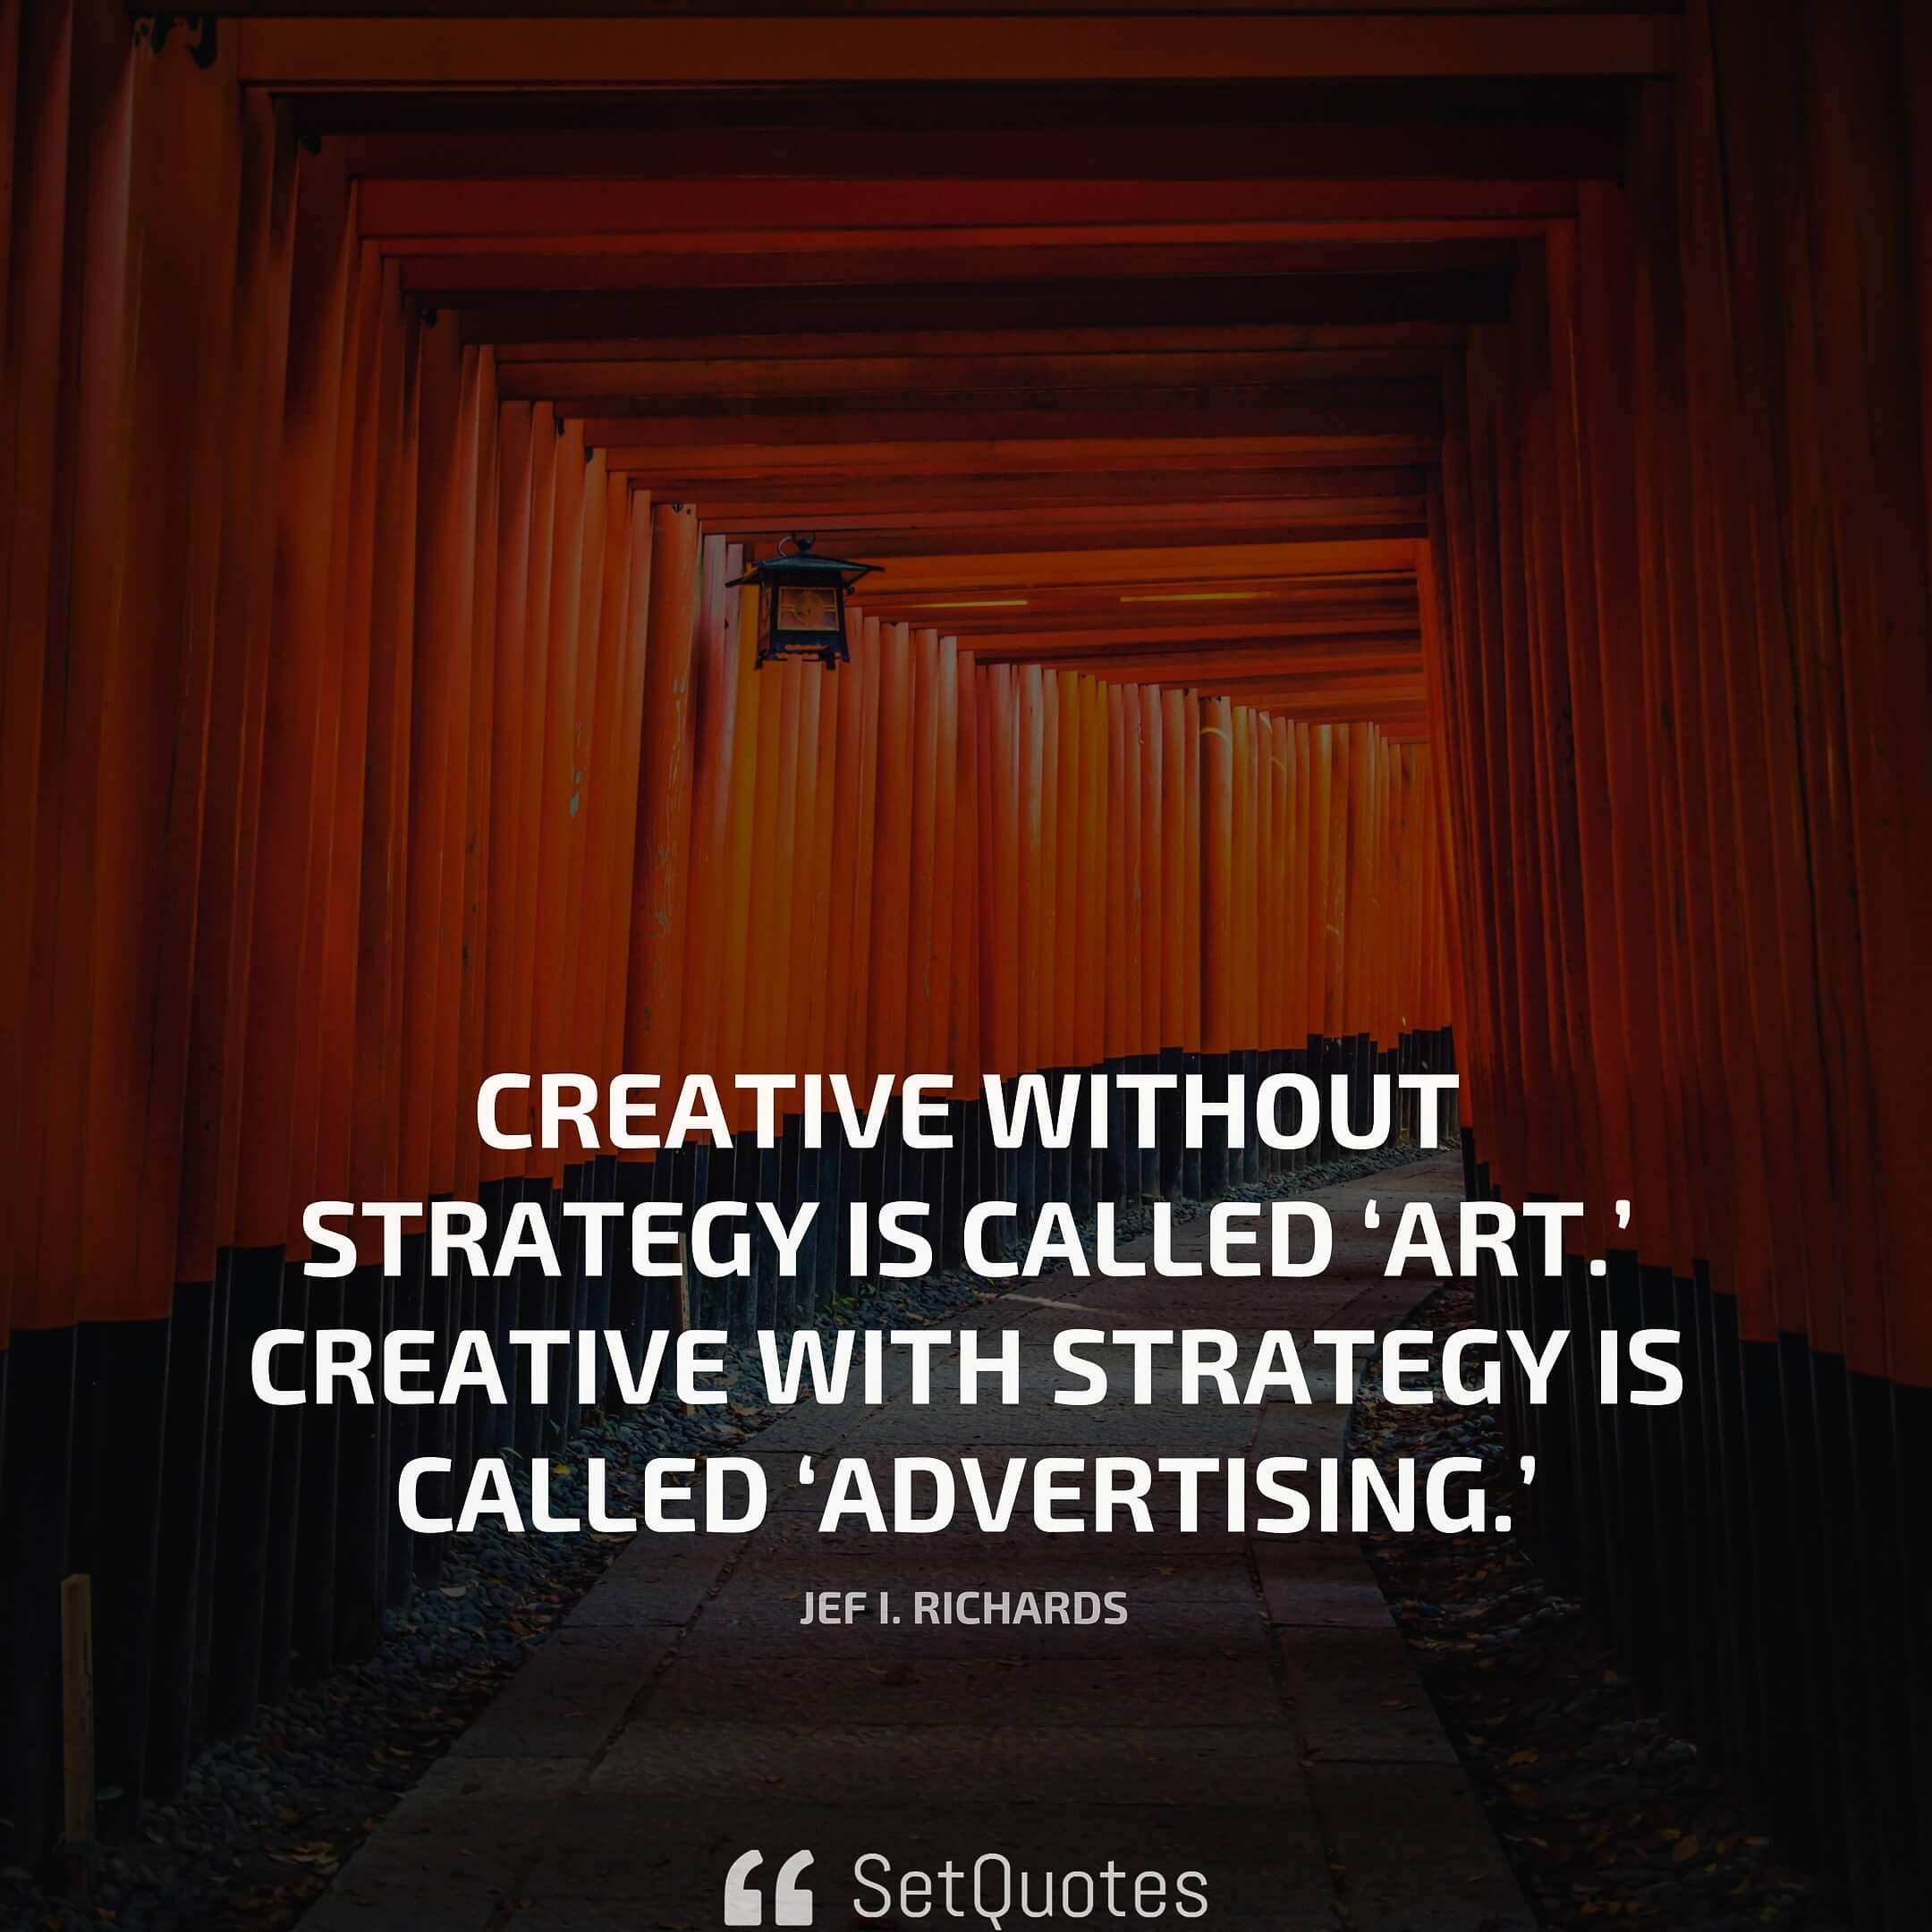 Creative without strategy is called 'art.' Creative with strategy is called 'advertising.' – Jef I. Richards